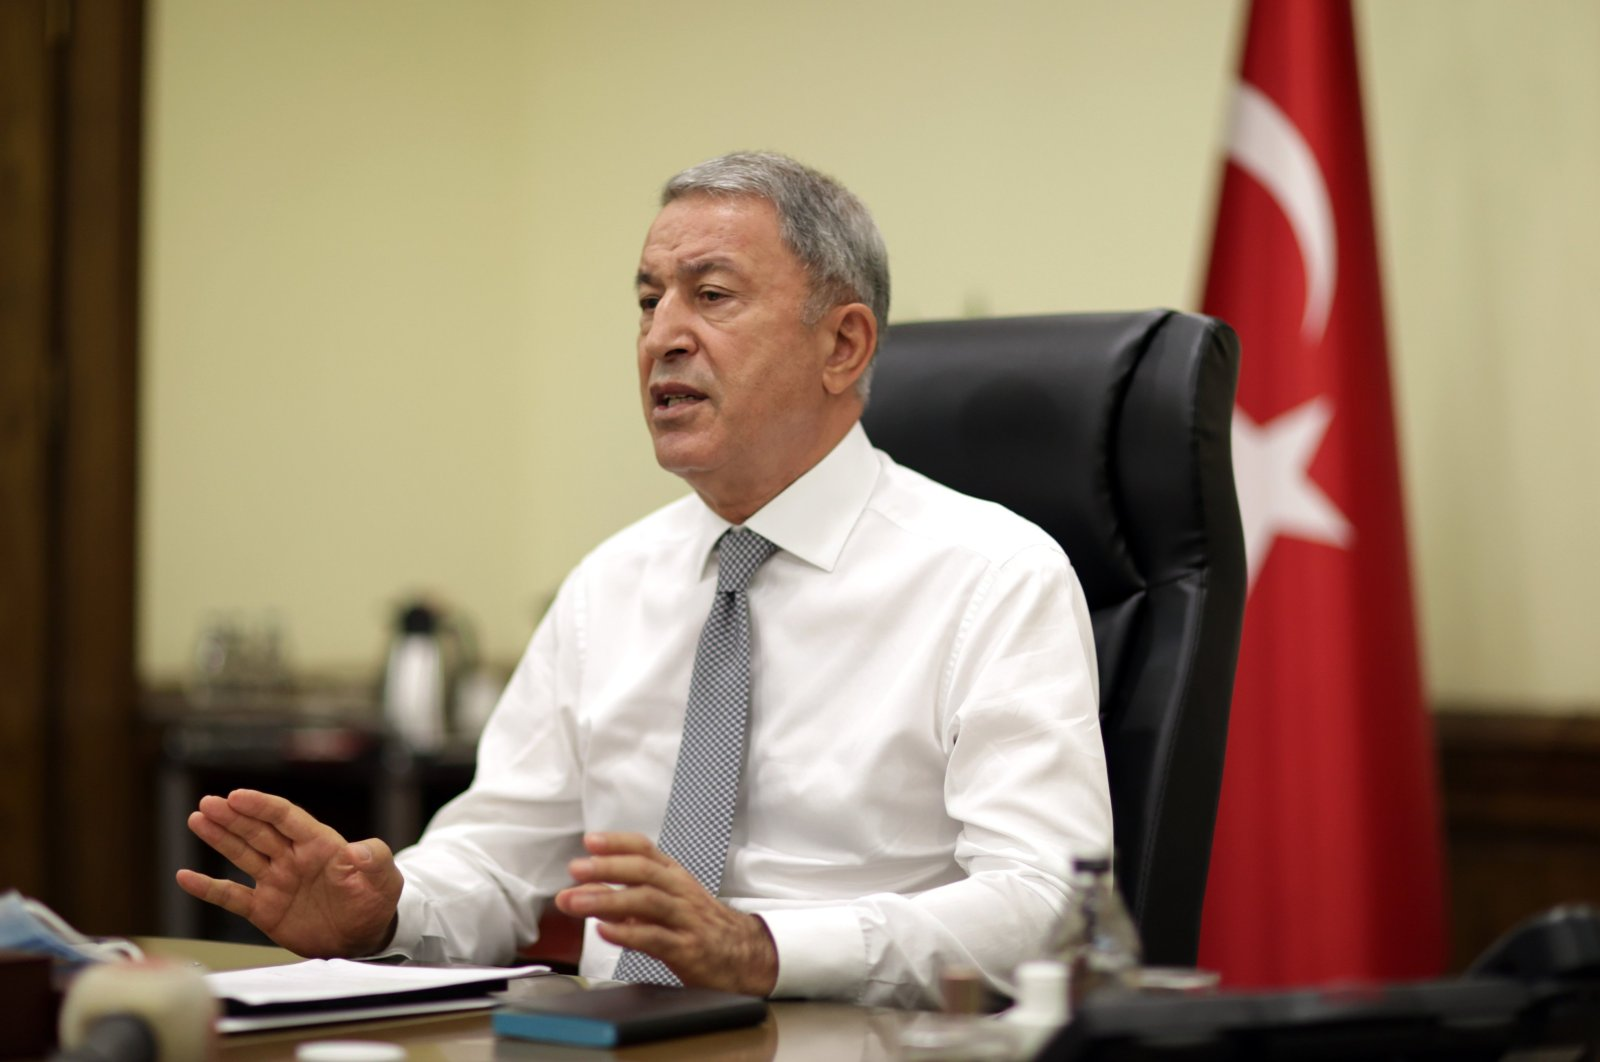 Defense Minister Hulusi Akar is seen during a teleconference in the capital Ankara, Turkey, July 5, 2021. DHA Photo)